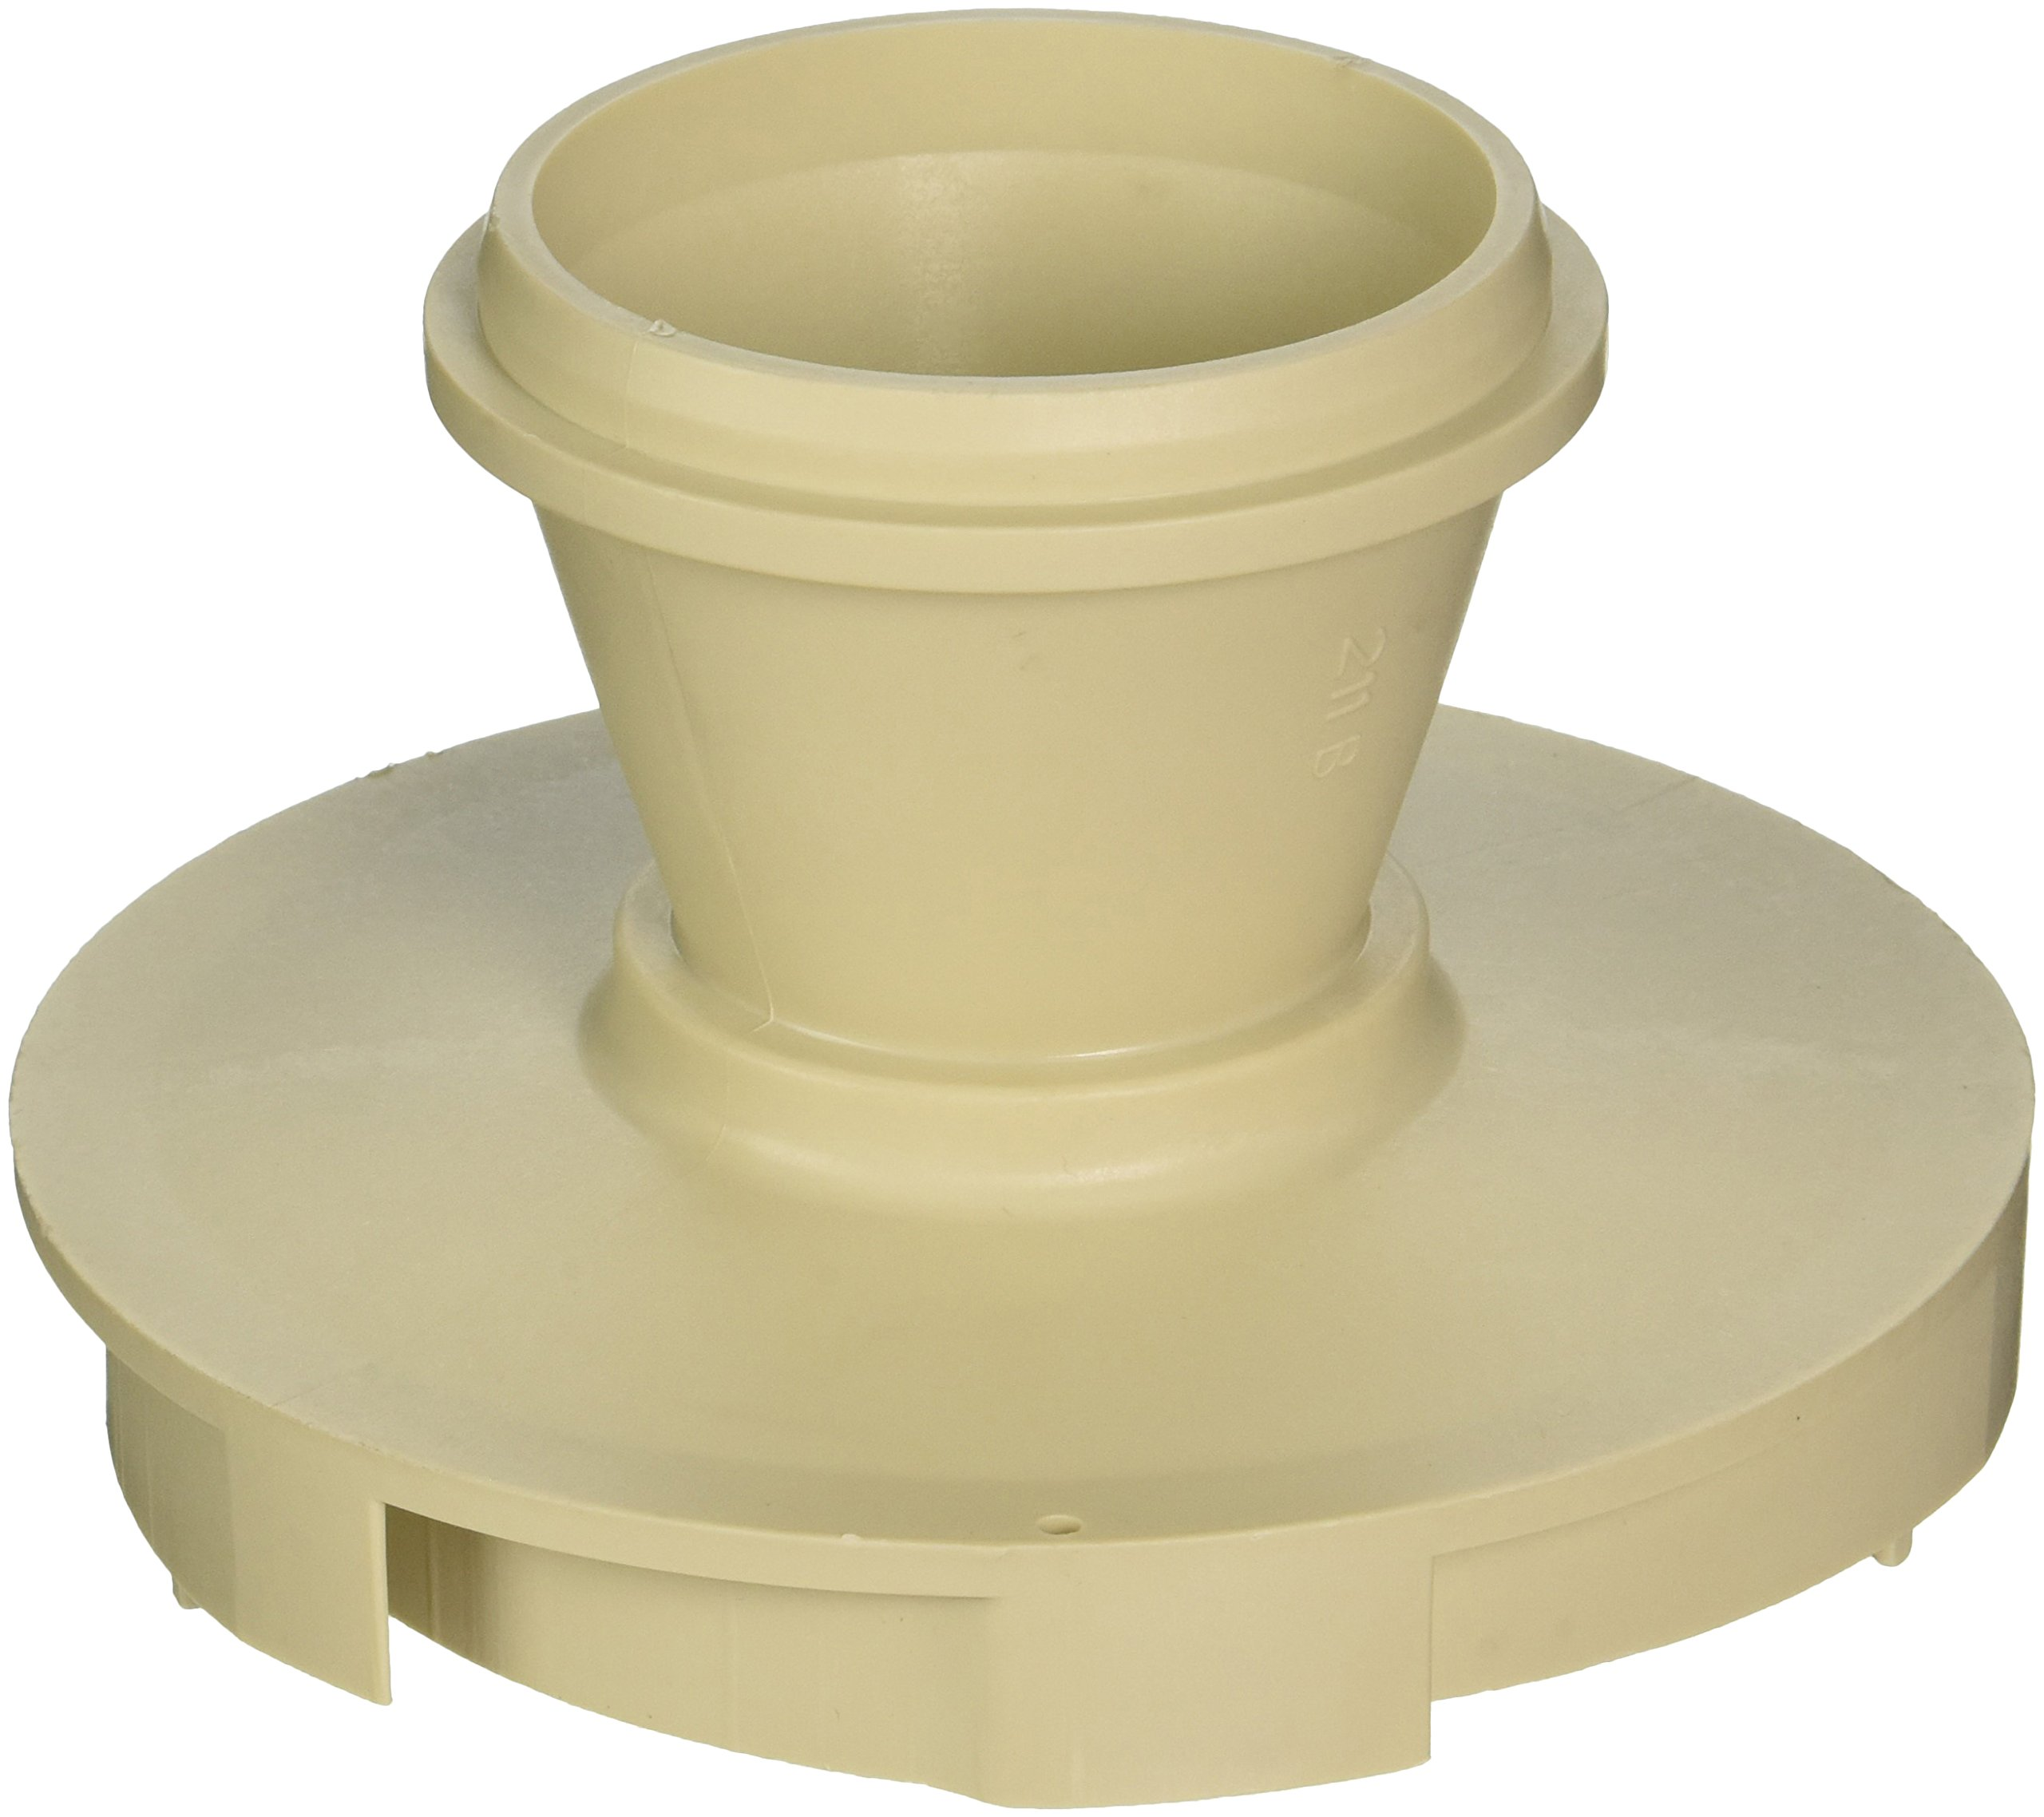 Pentair 072927 Diffuser Assembly Replacement WhisperFlo Inground Pool and Spa Pump